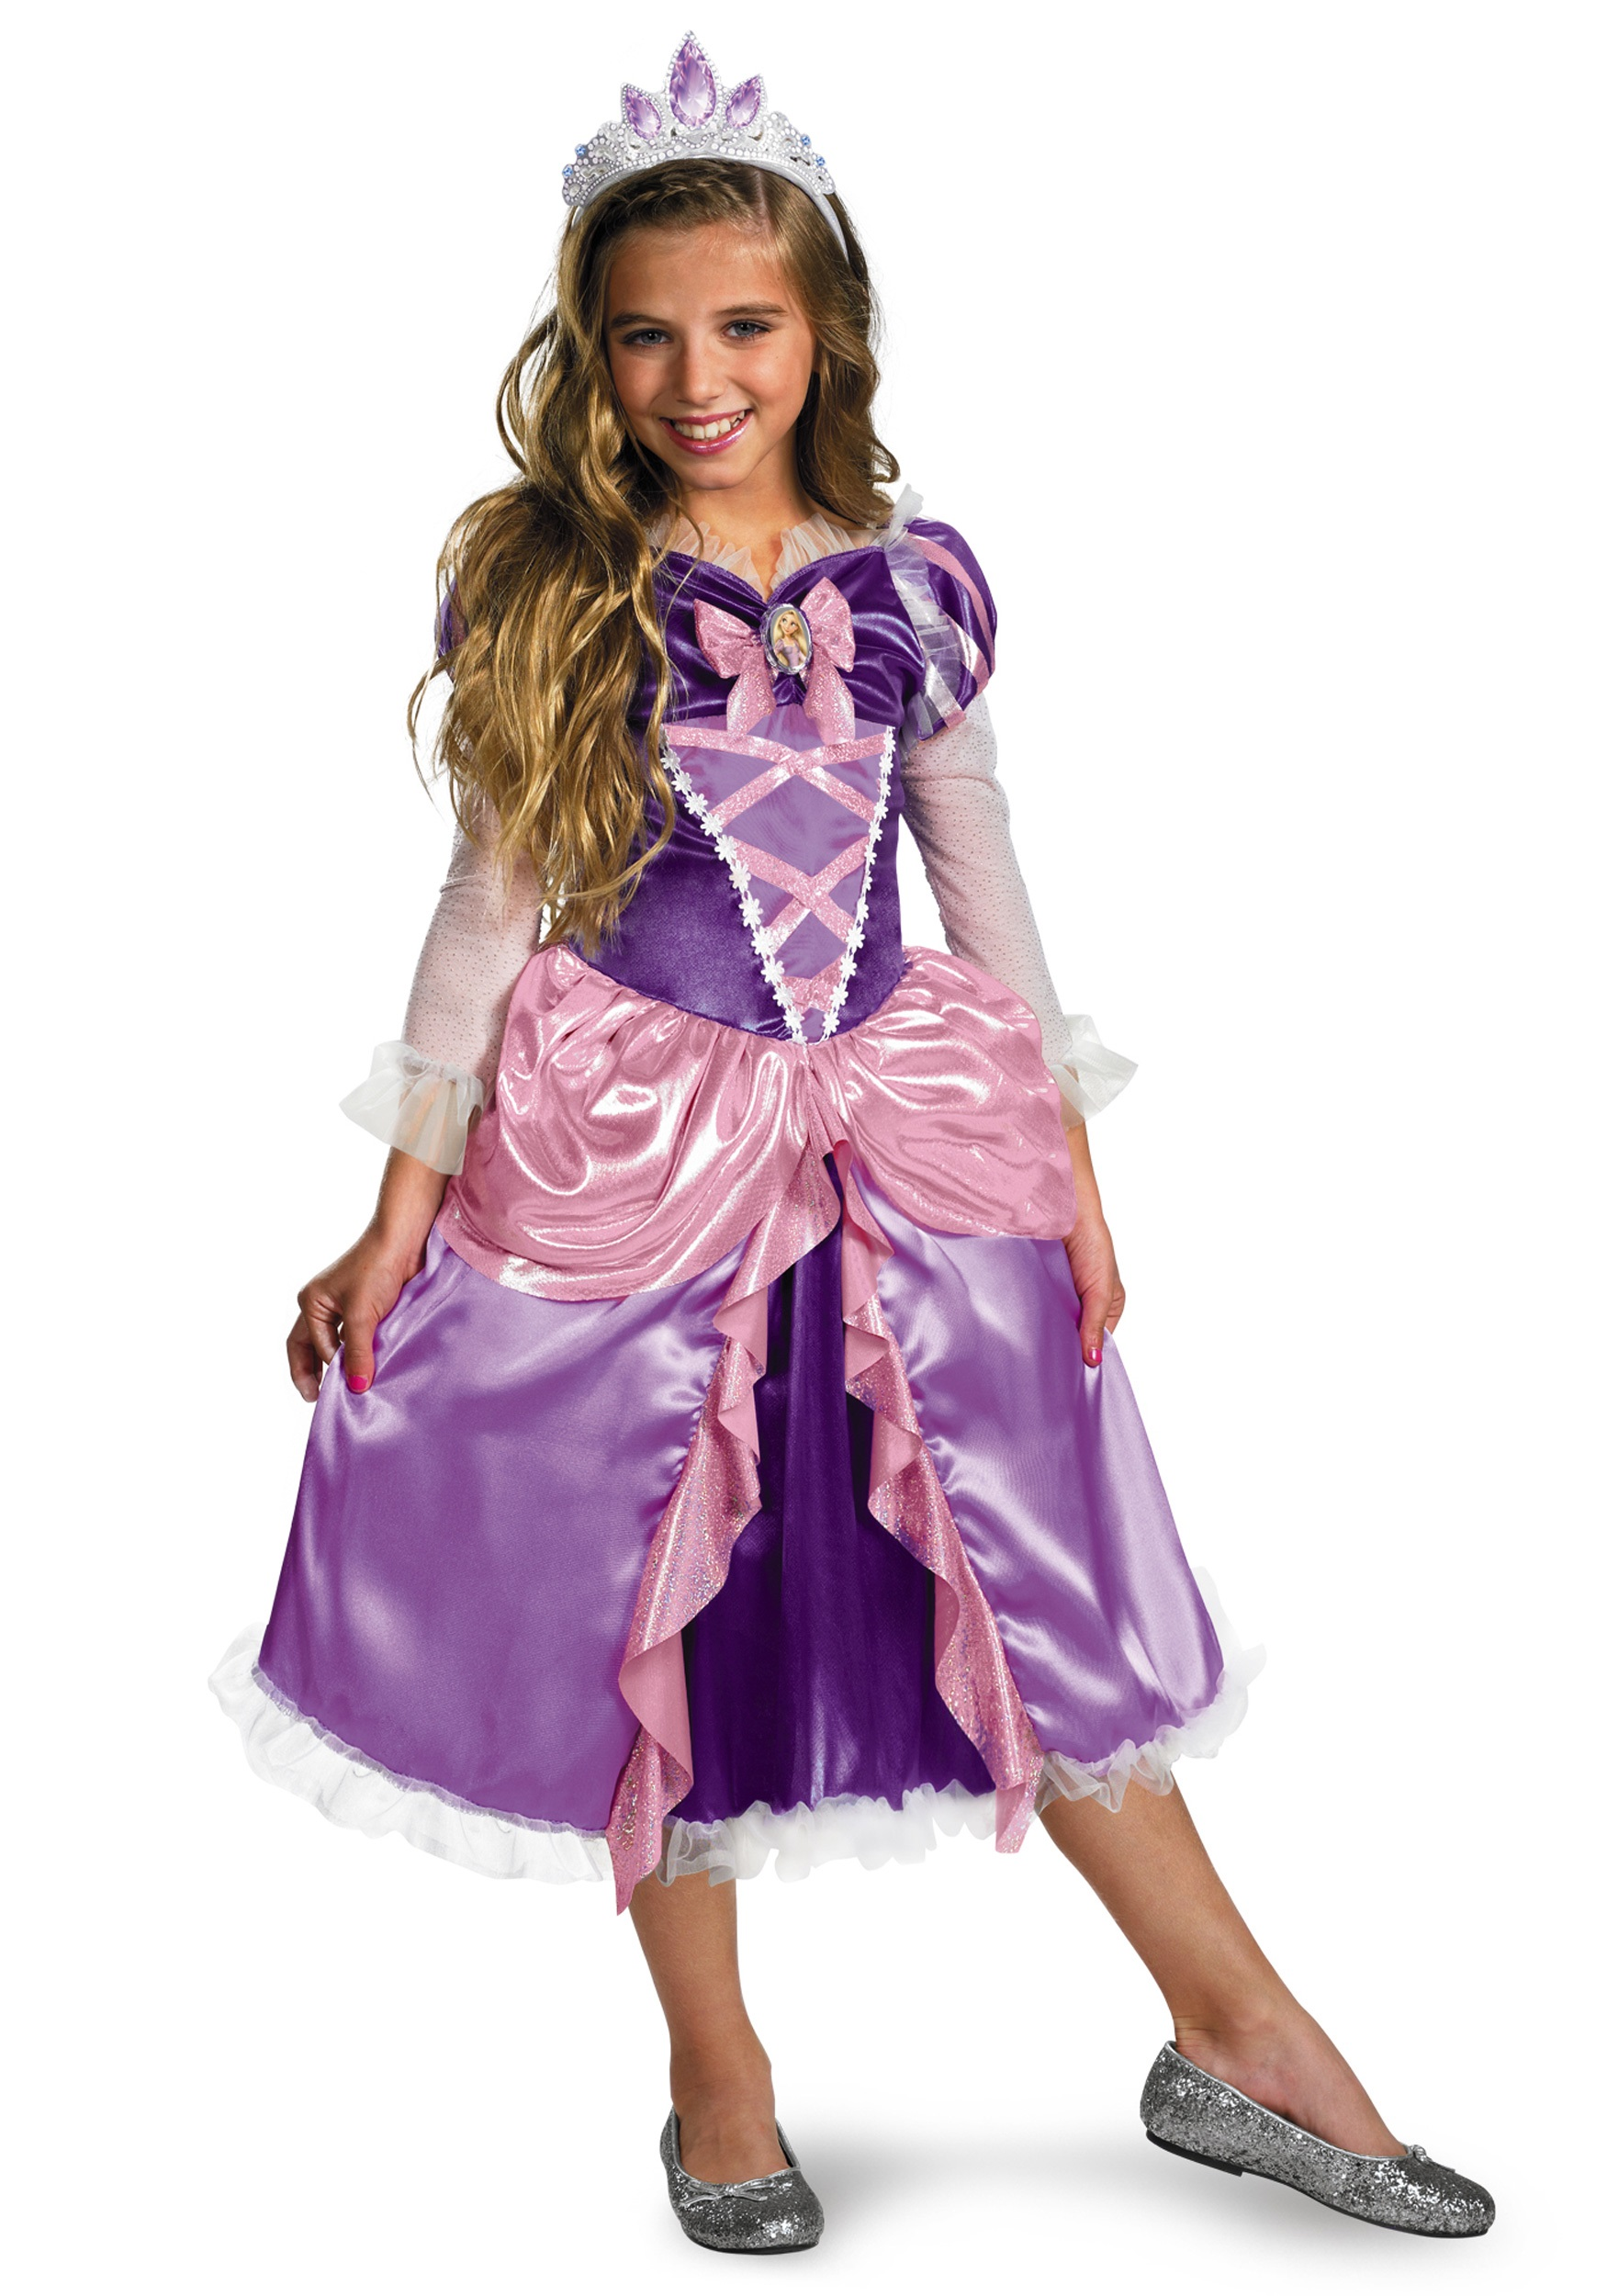 Deluxe Girls Tangled Rapunzel Costume  sc 1 st  Halloween Costumes & Deluxe Girls Tangled Rapunzel Costume - Halloween Costumes